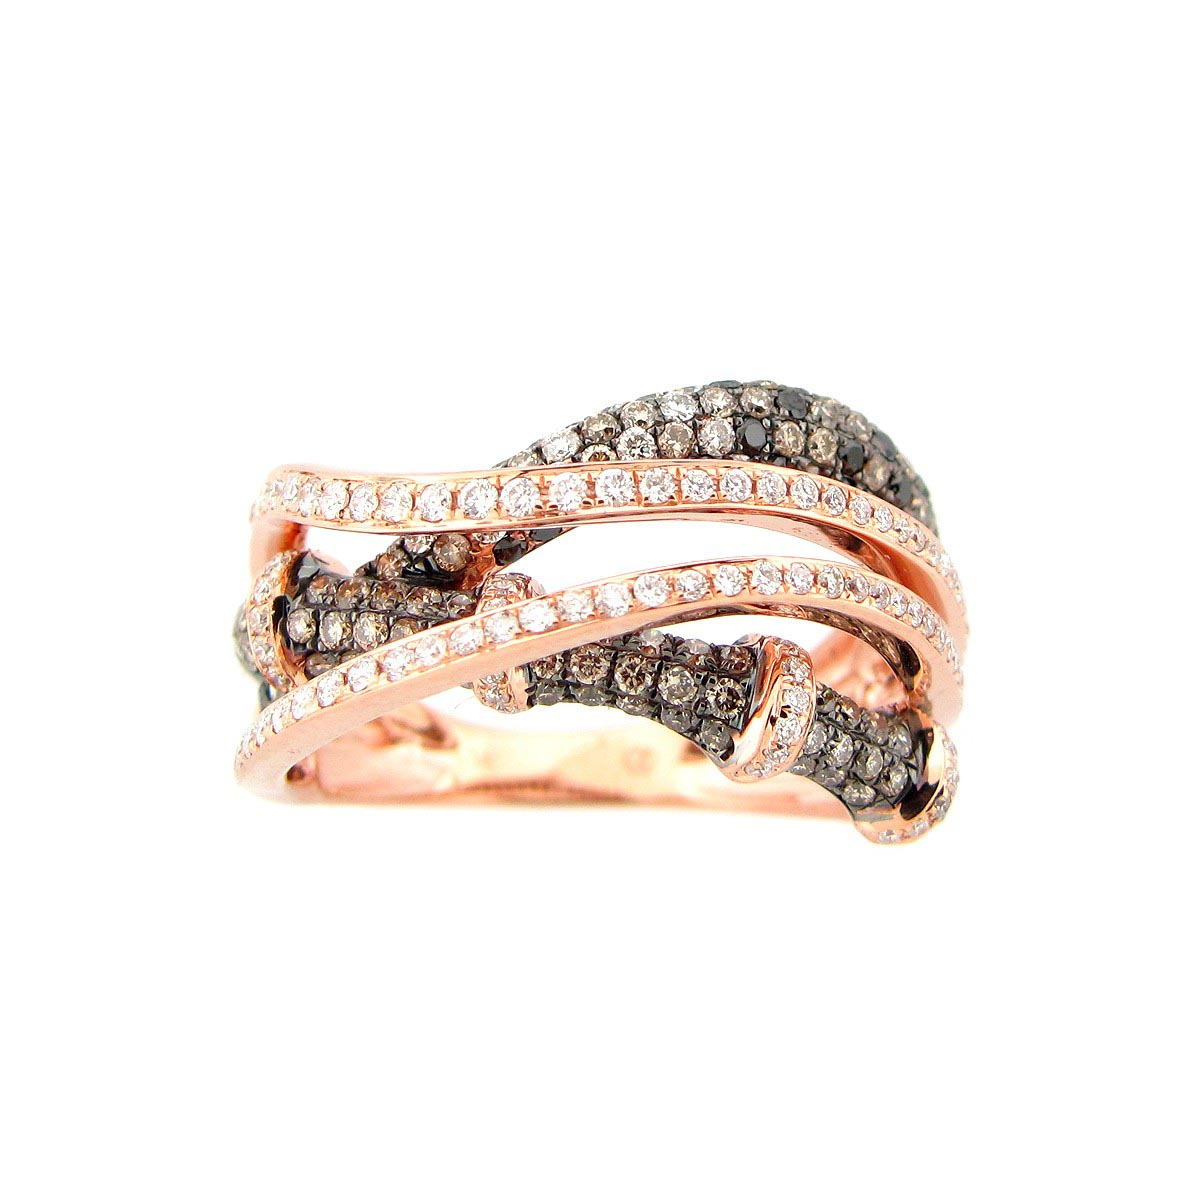 Black, Brown & White Diamond Ring